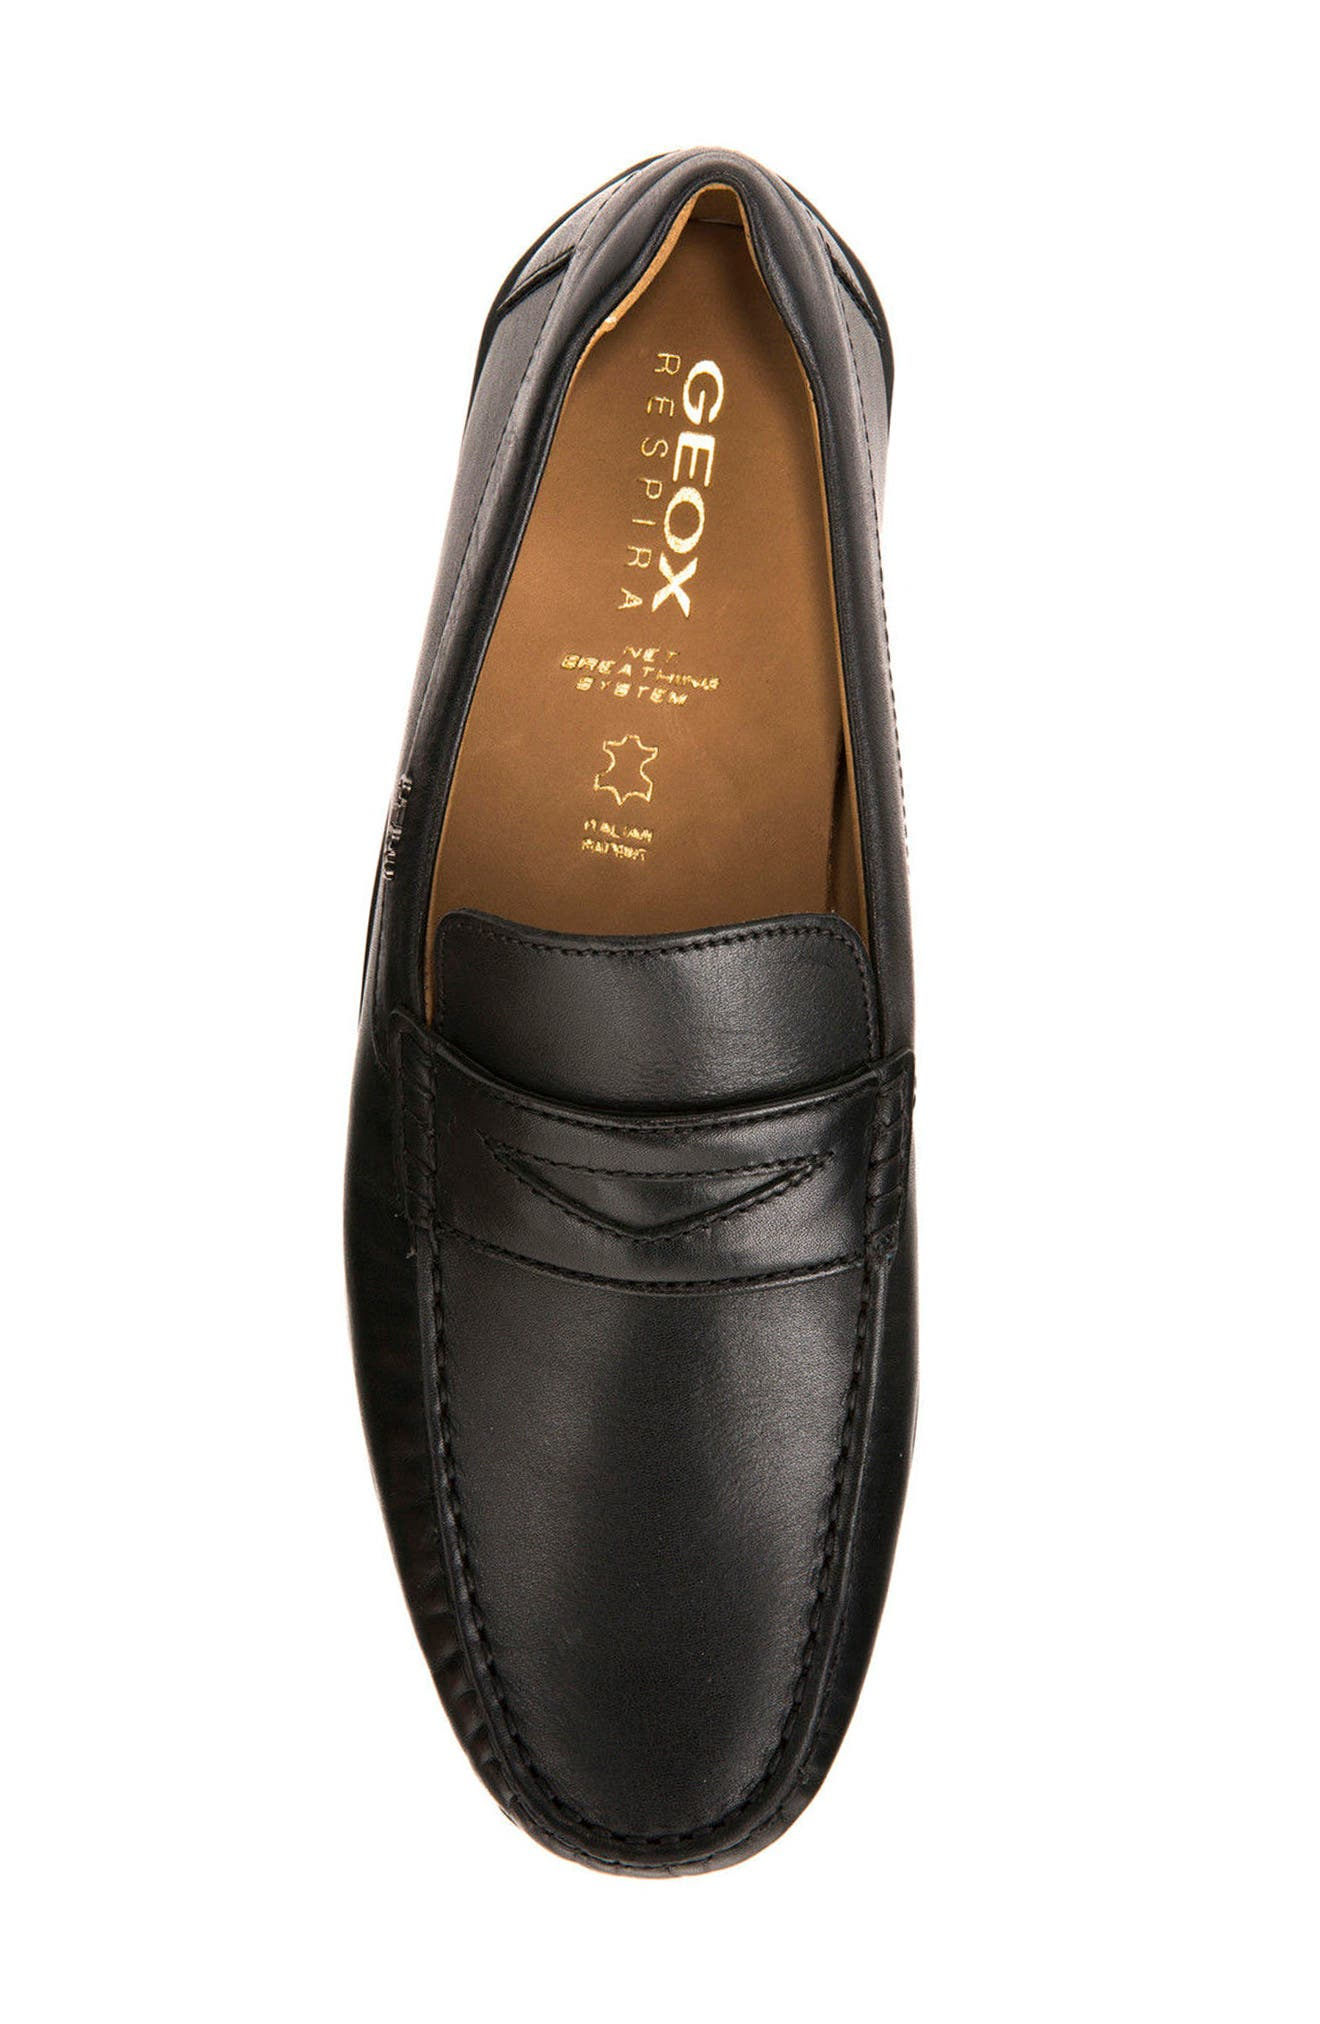 Xense Penny Loafer,                             Alternate thumbnail 5, color,                             001